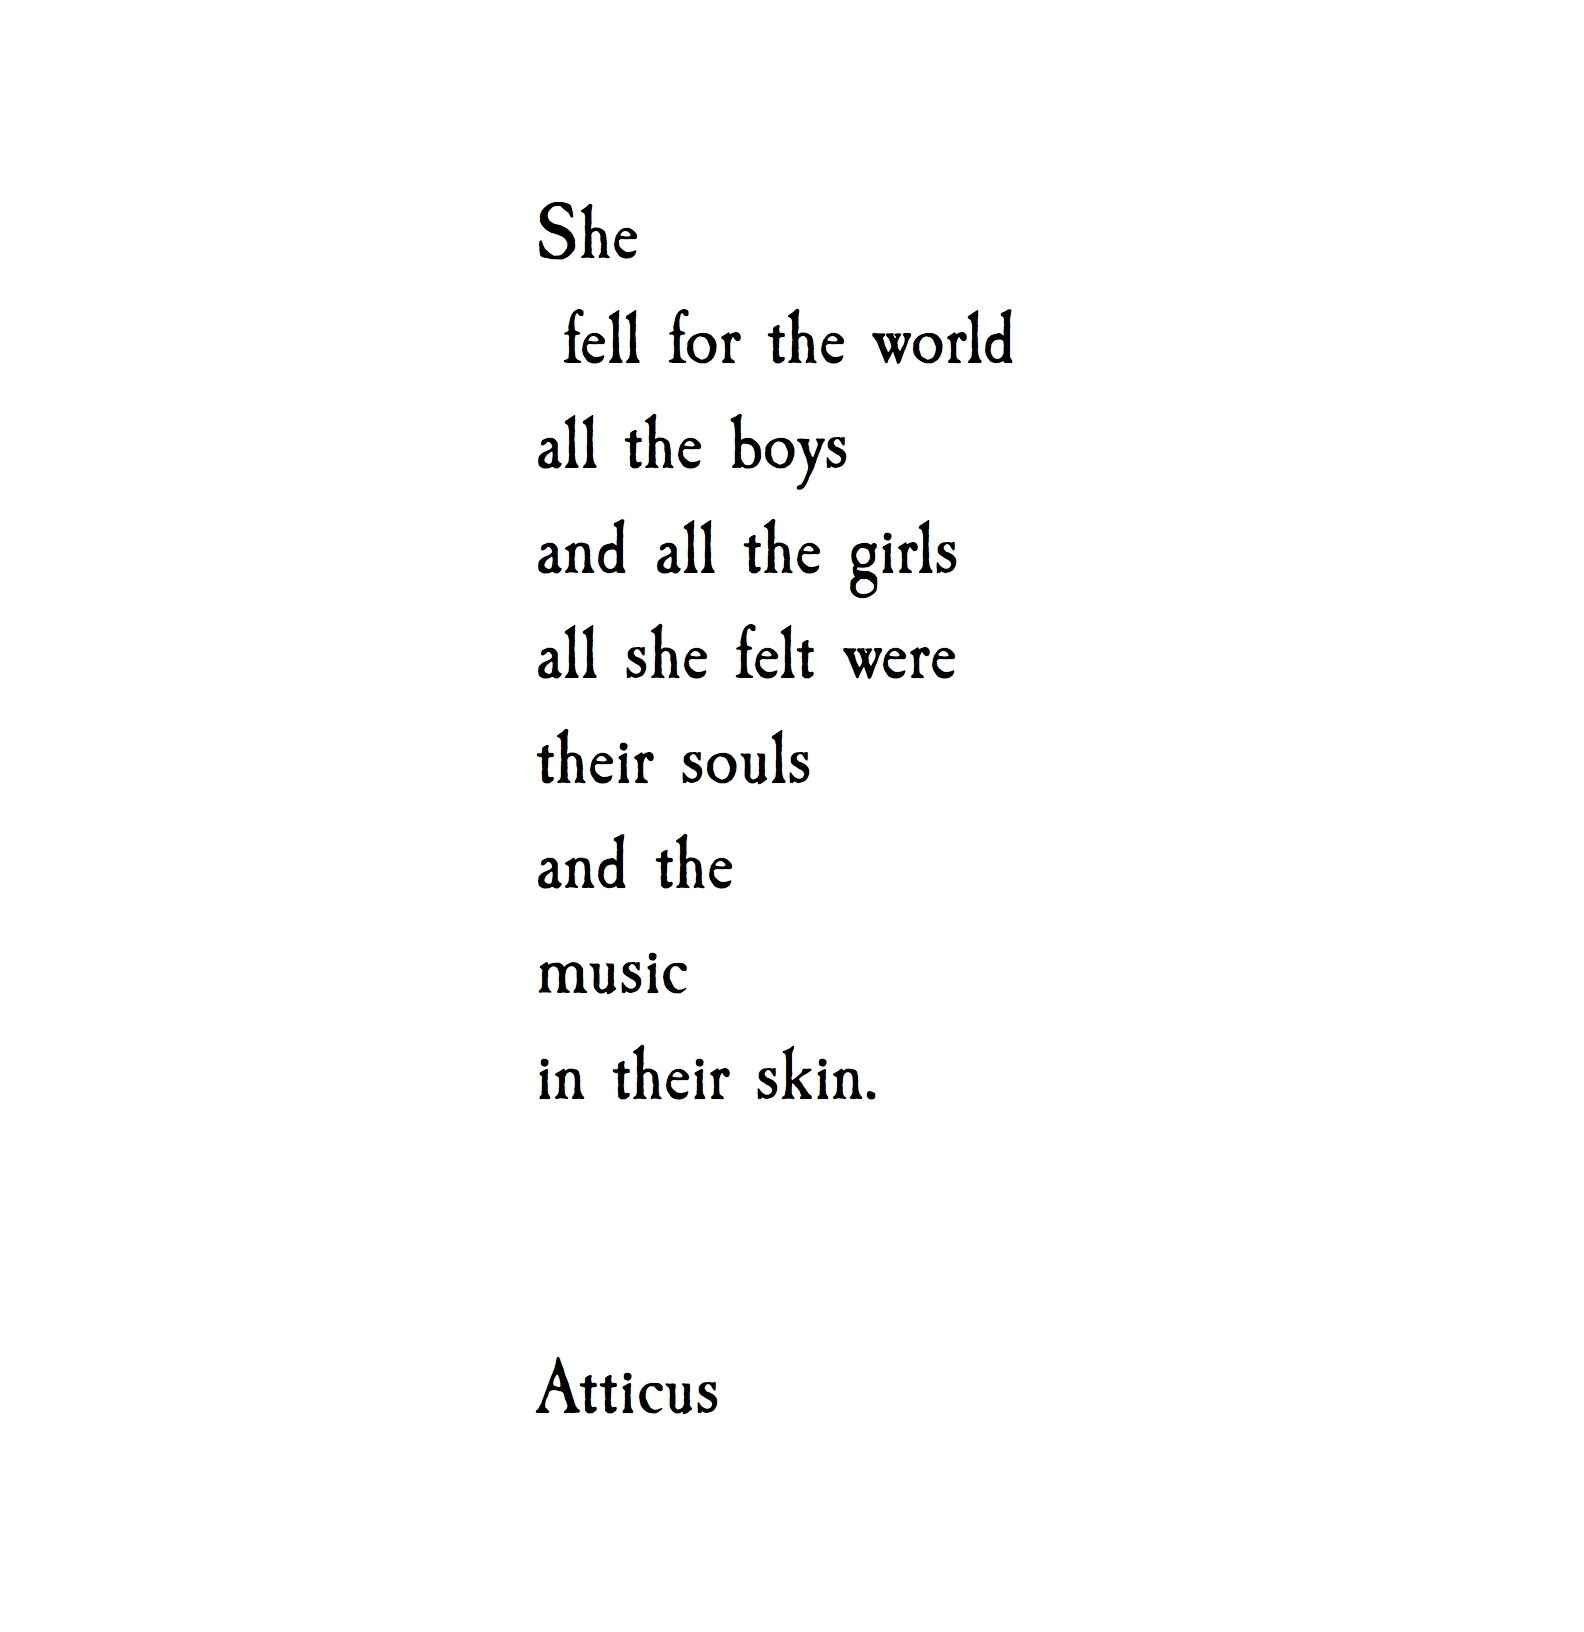 She Fell atticuspoetry atticus poetry loveh…